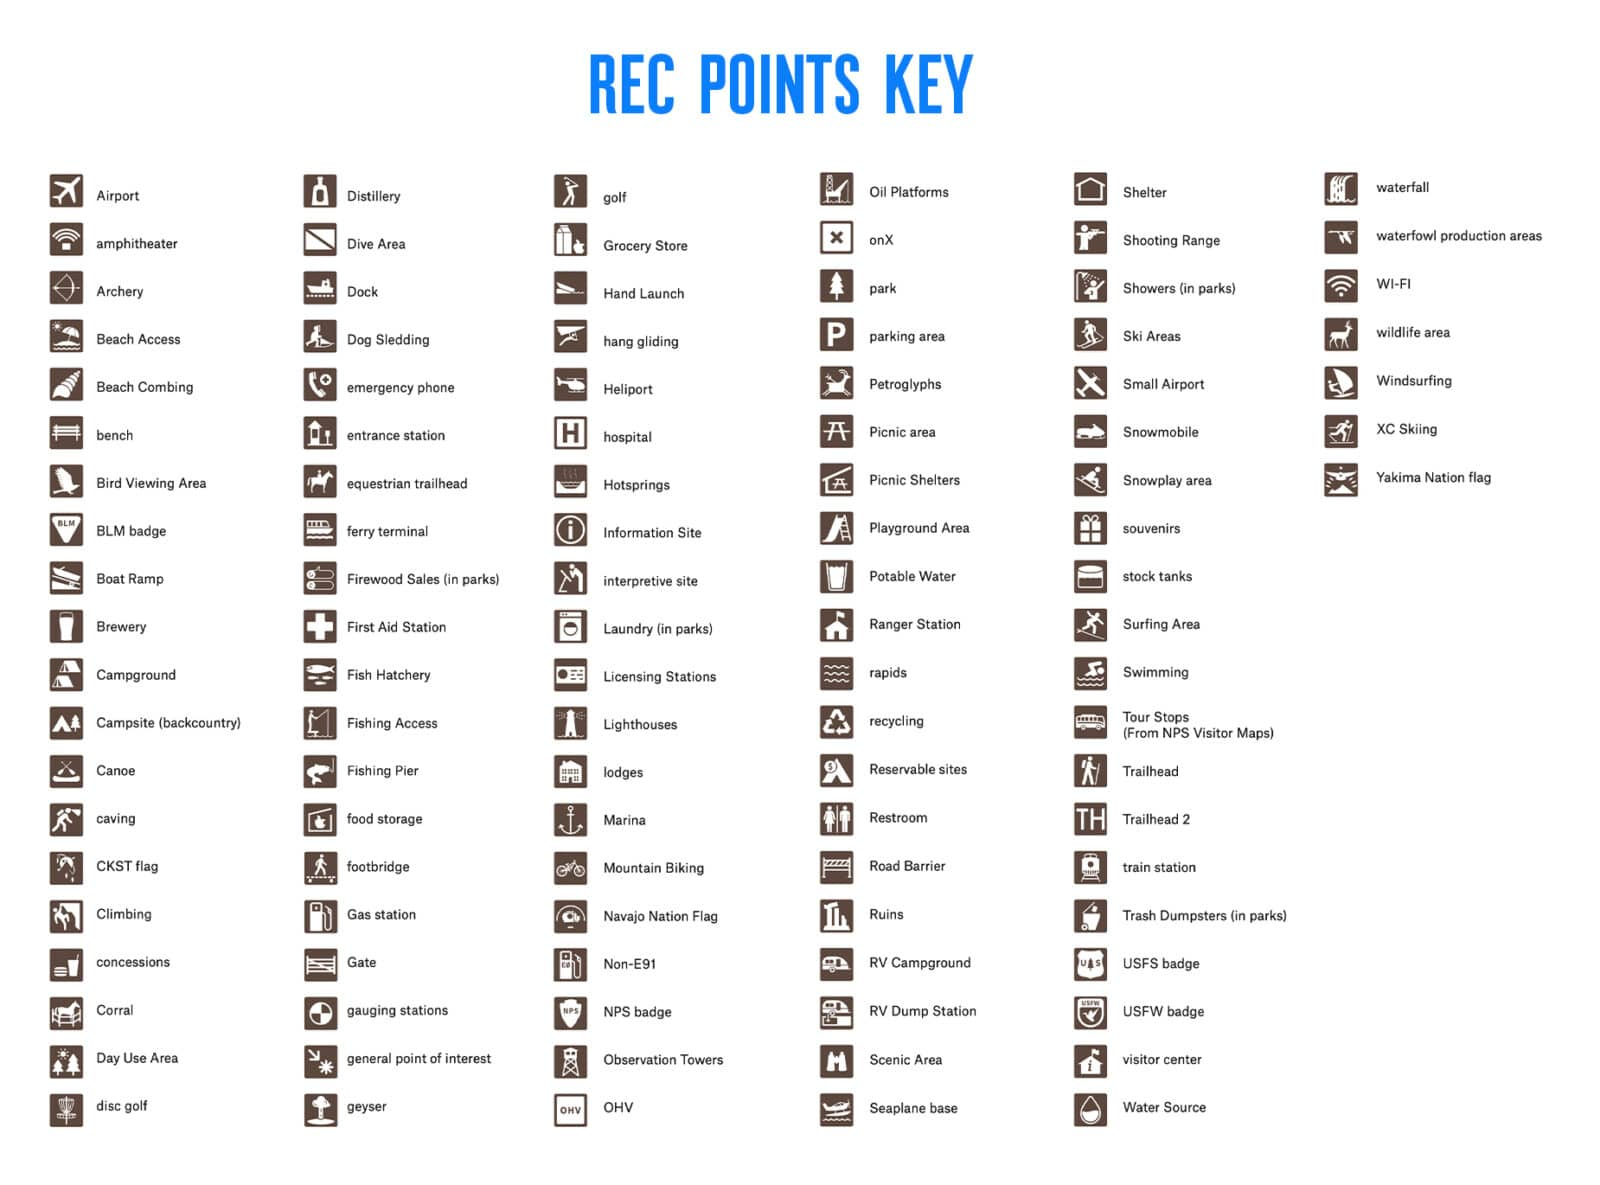 How to Use BC Rec Points - Rec Point Legend